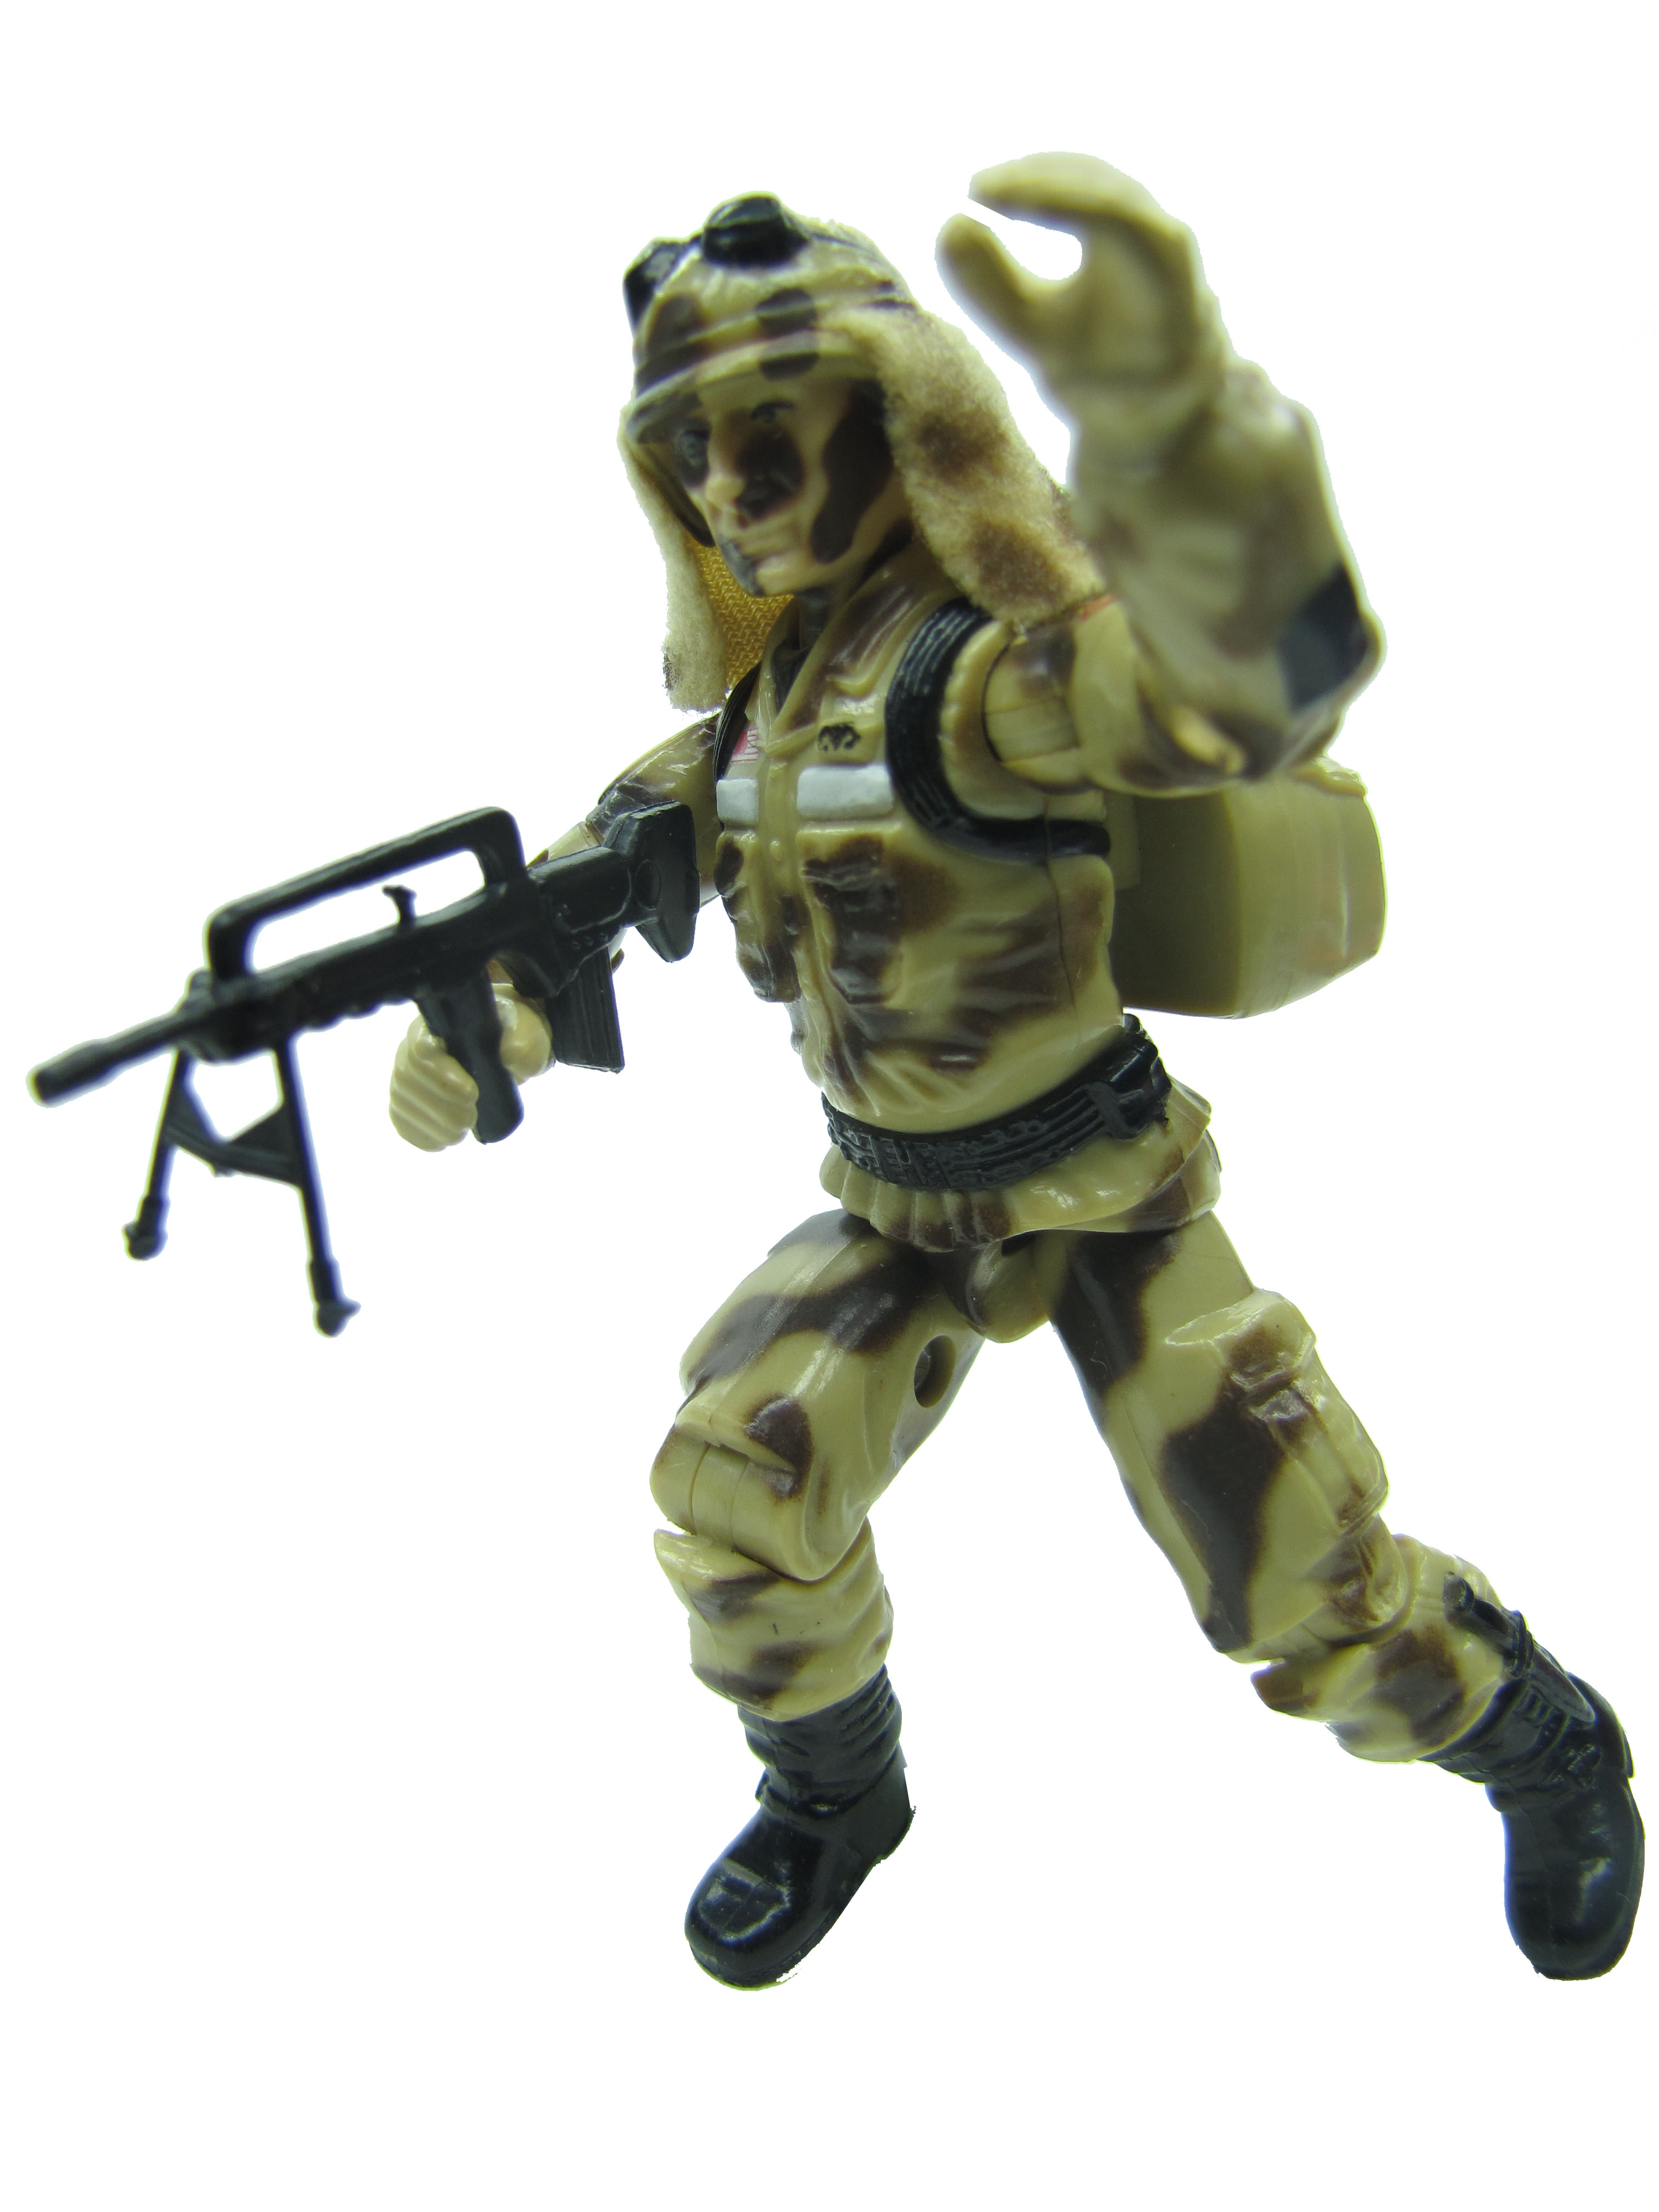 1985 GIJoe DUSTY DESERT TROOPER Complete